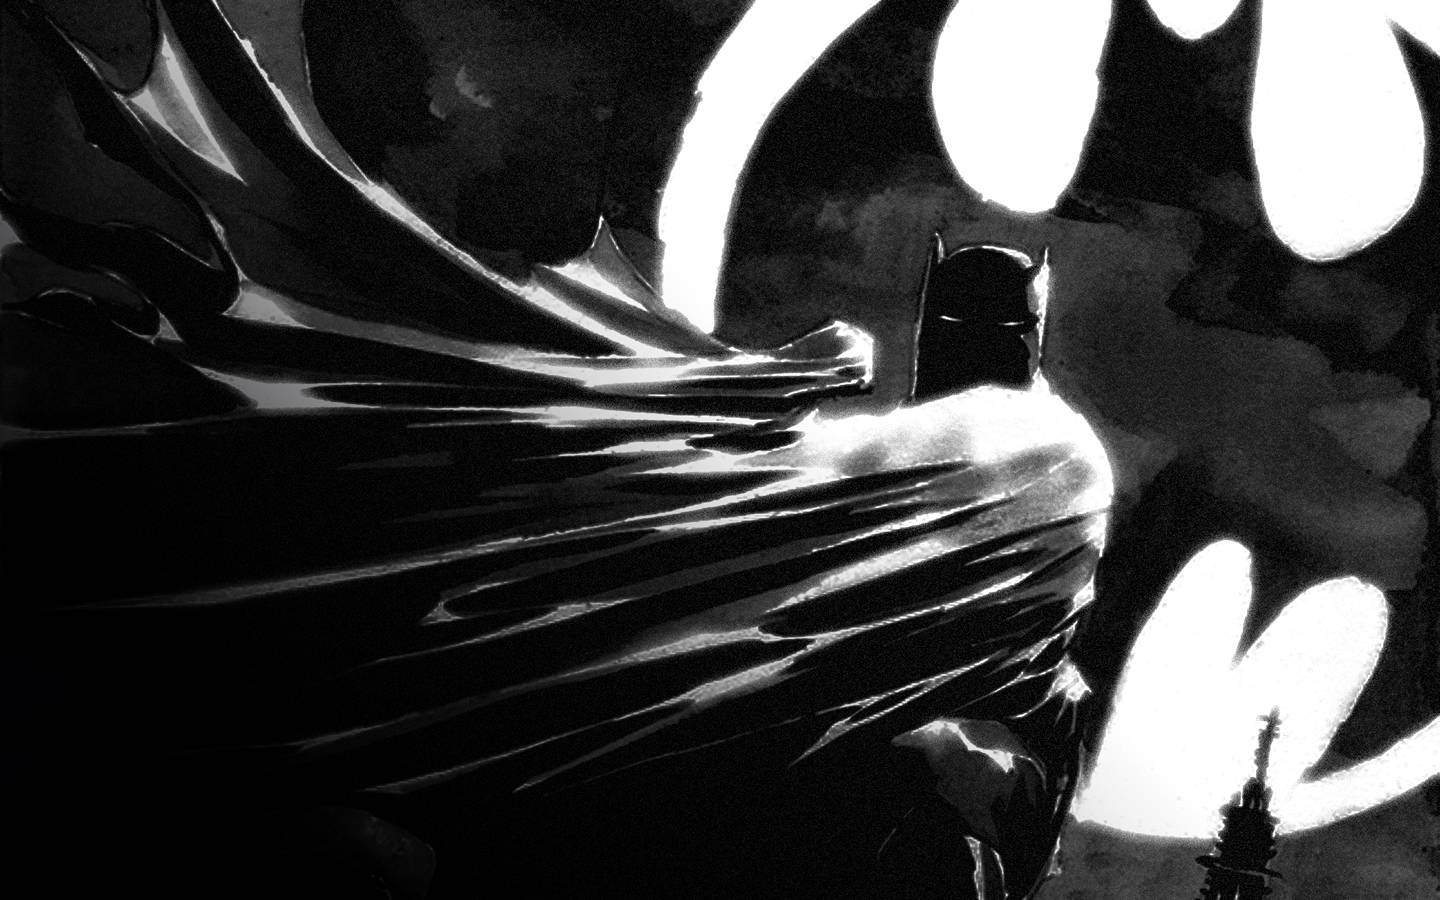 Batman wallpaper17 batman cinematic wallpaper 1440x900